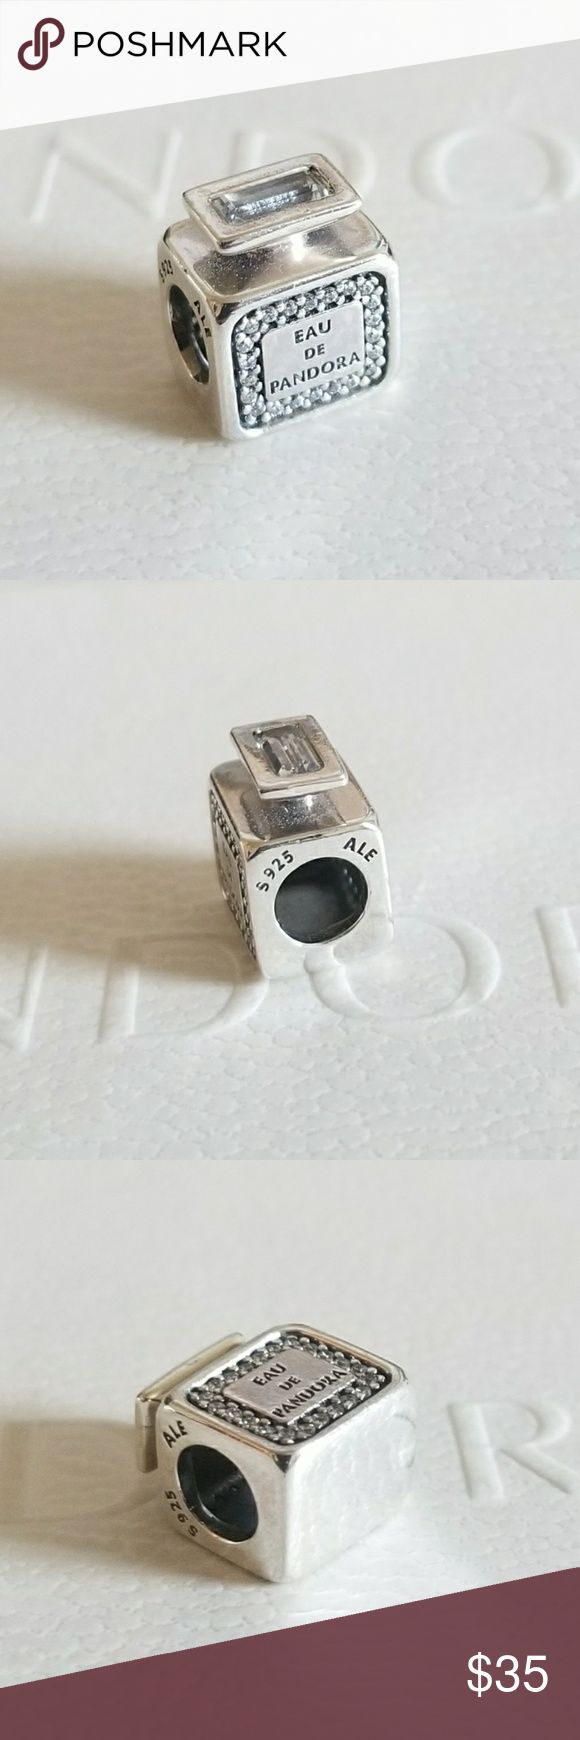 Pandora Signature Scent Eau de Perfume CZ Charm 100% Authentic Pandora  Good condition  Properly stamped  Pandora stores offer lifetime free cleaning No box included Fast shipping Pandora Jewelry Bracelets